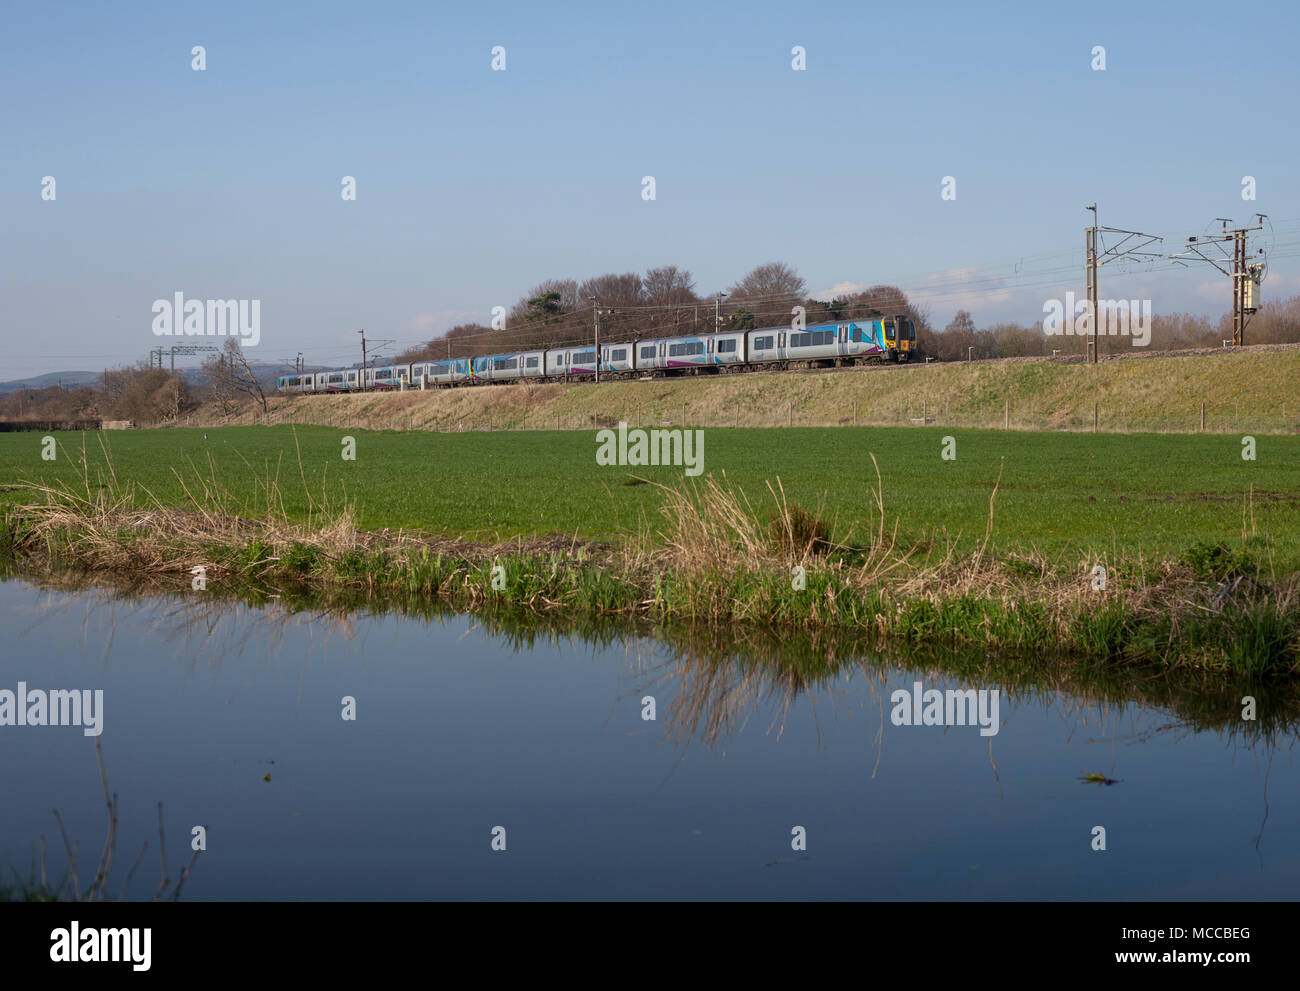 2 Transpennine express class 350 electric trains on the west coast main line passing Catterall, Lancashire - Stock Image